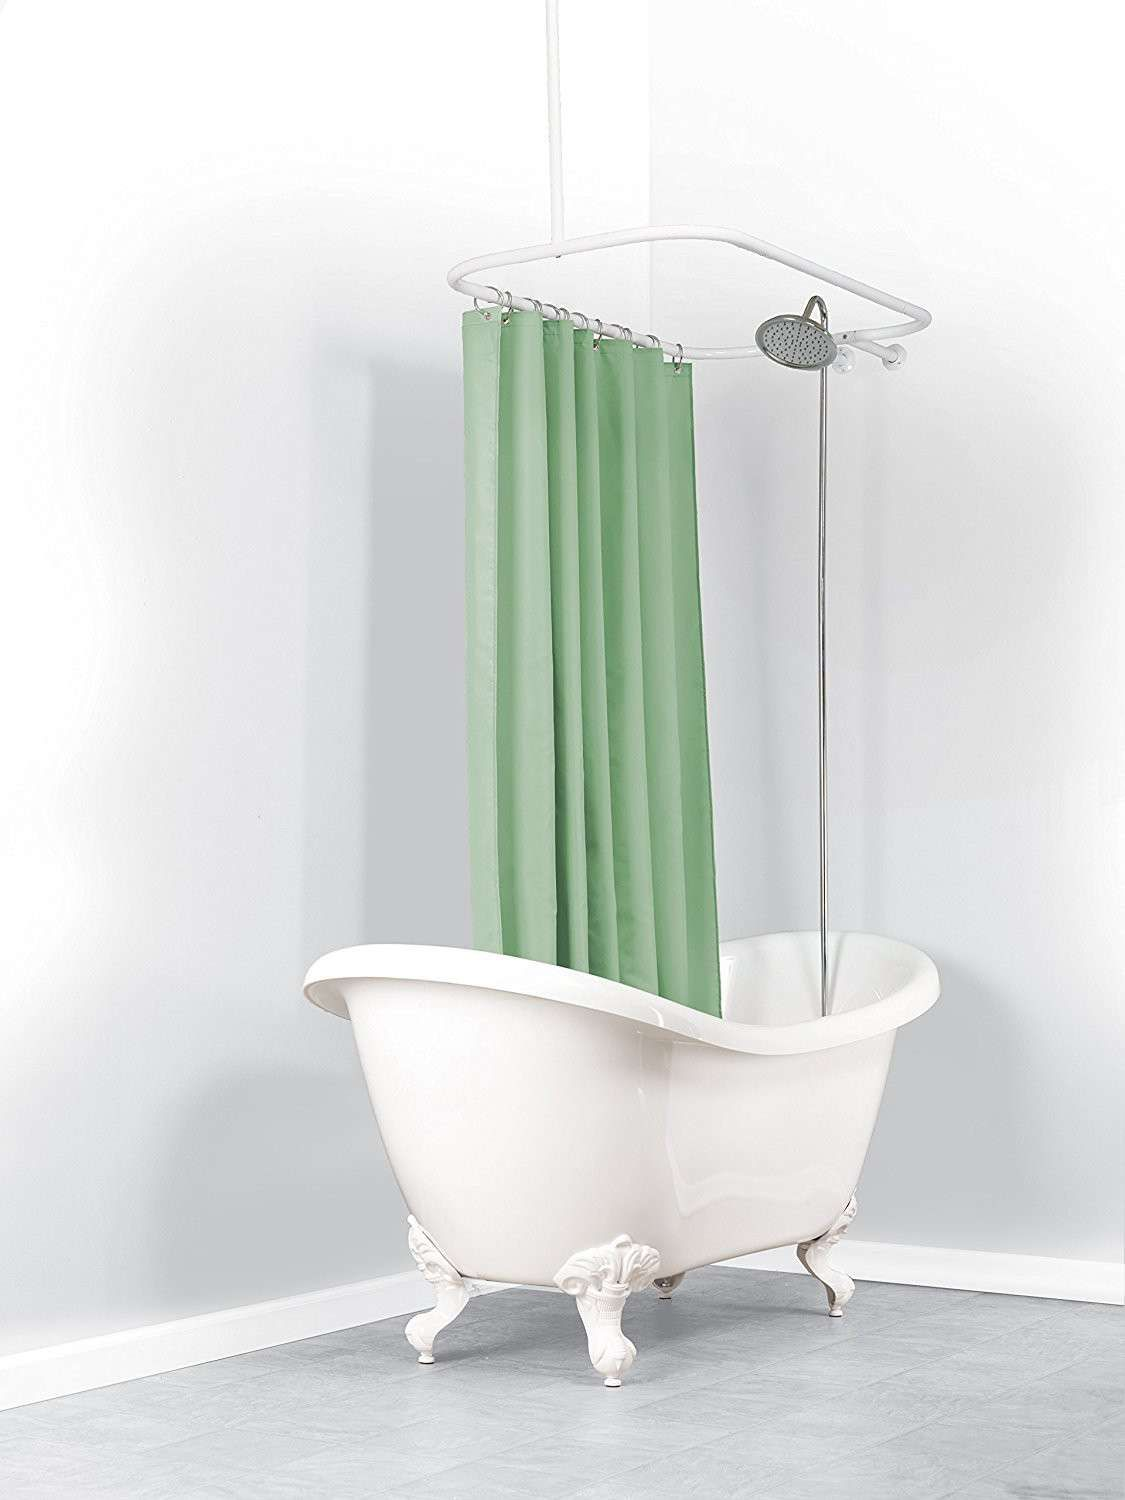 Oval Shower Curtain Rod For Clawfoot Tub Fresh Design Oval Shower